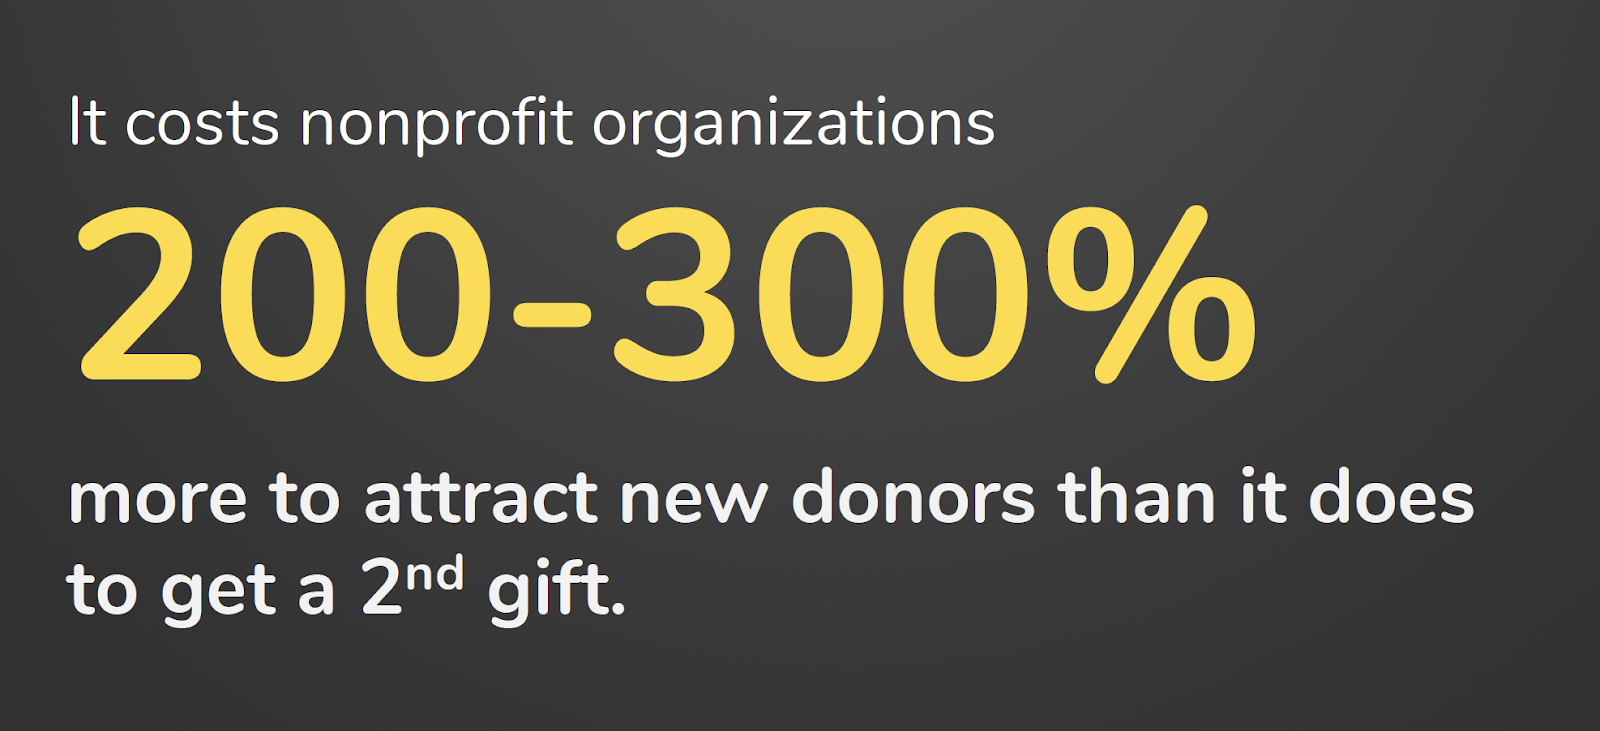 retain-year-end-donors-attract-new-donors